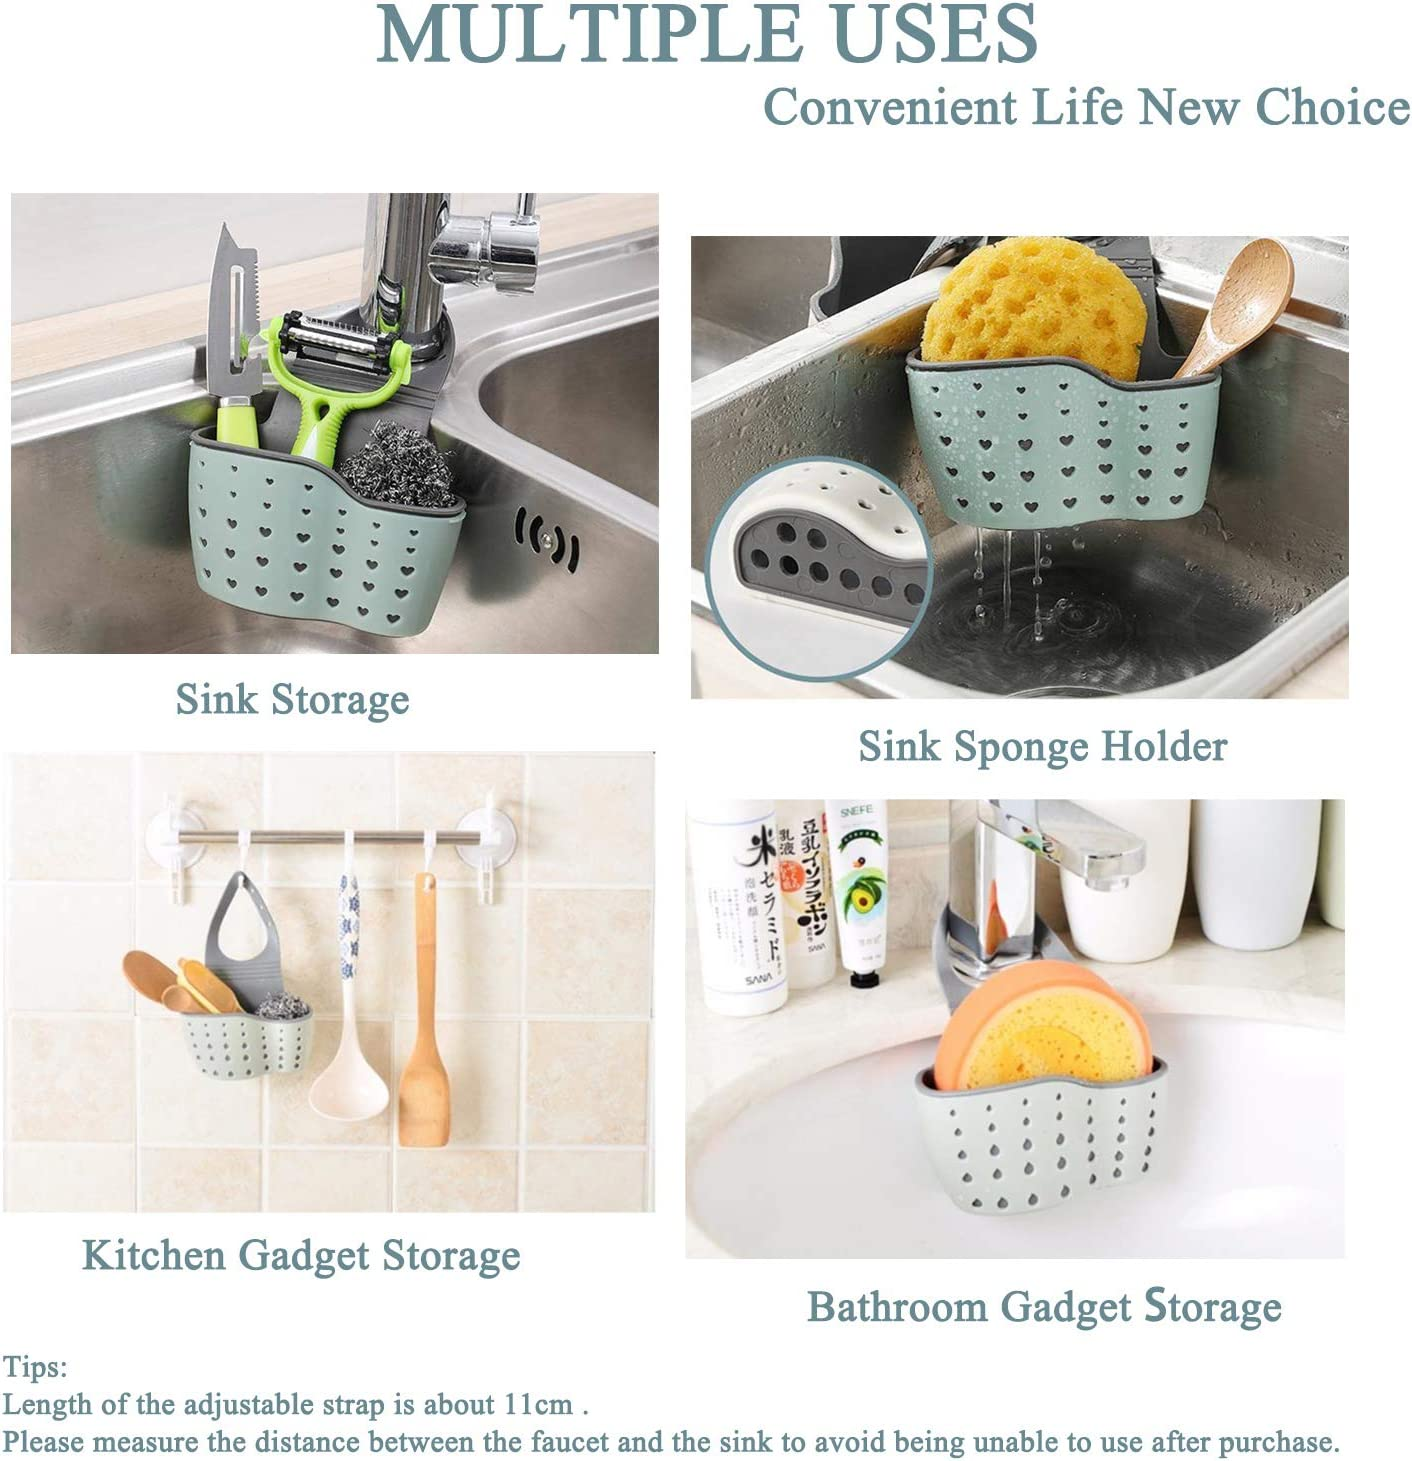 1PCS,Beige Sink Sponge Soap Caddy over Faucet Keep Kitchen Organized Silicone Sponge Caddy with Drain Holes for Drying Double Hanging Ajustable Strap Sink Caddy Sponge Holder for Sink